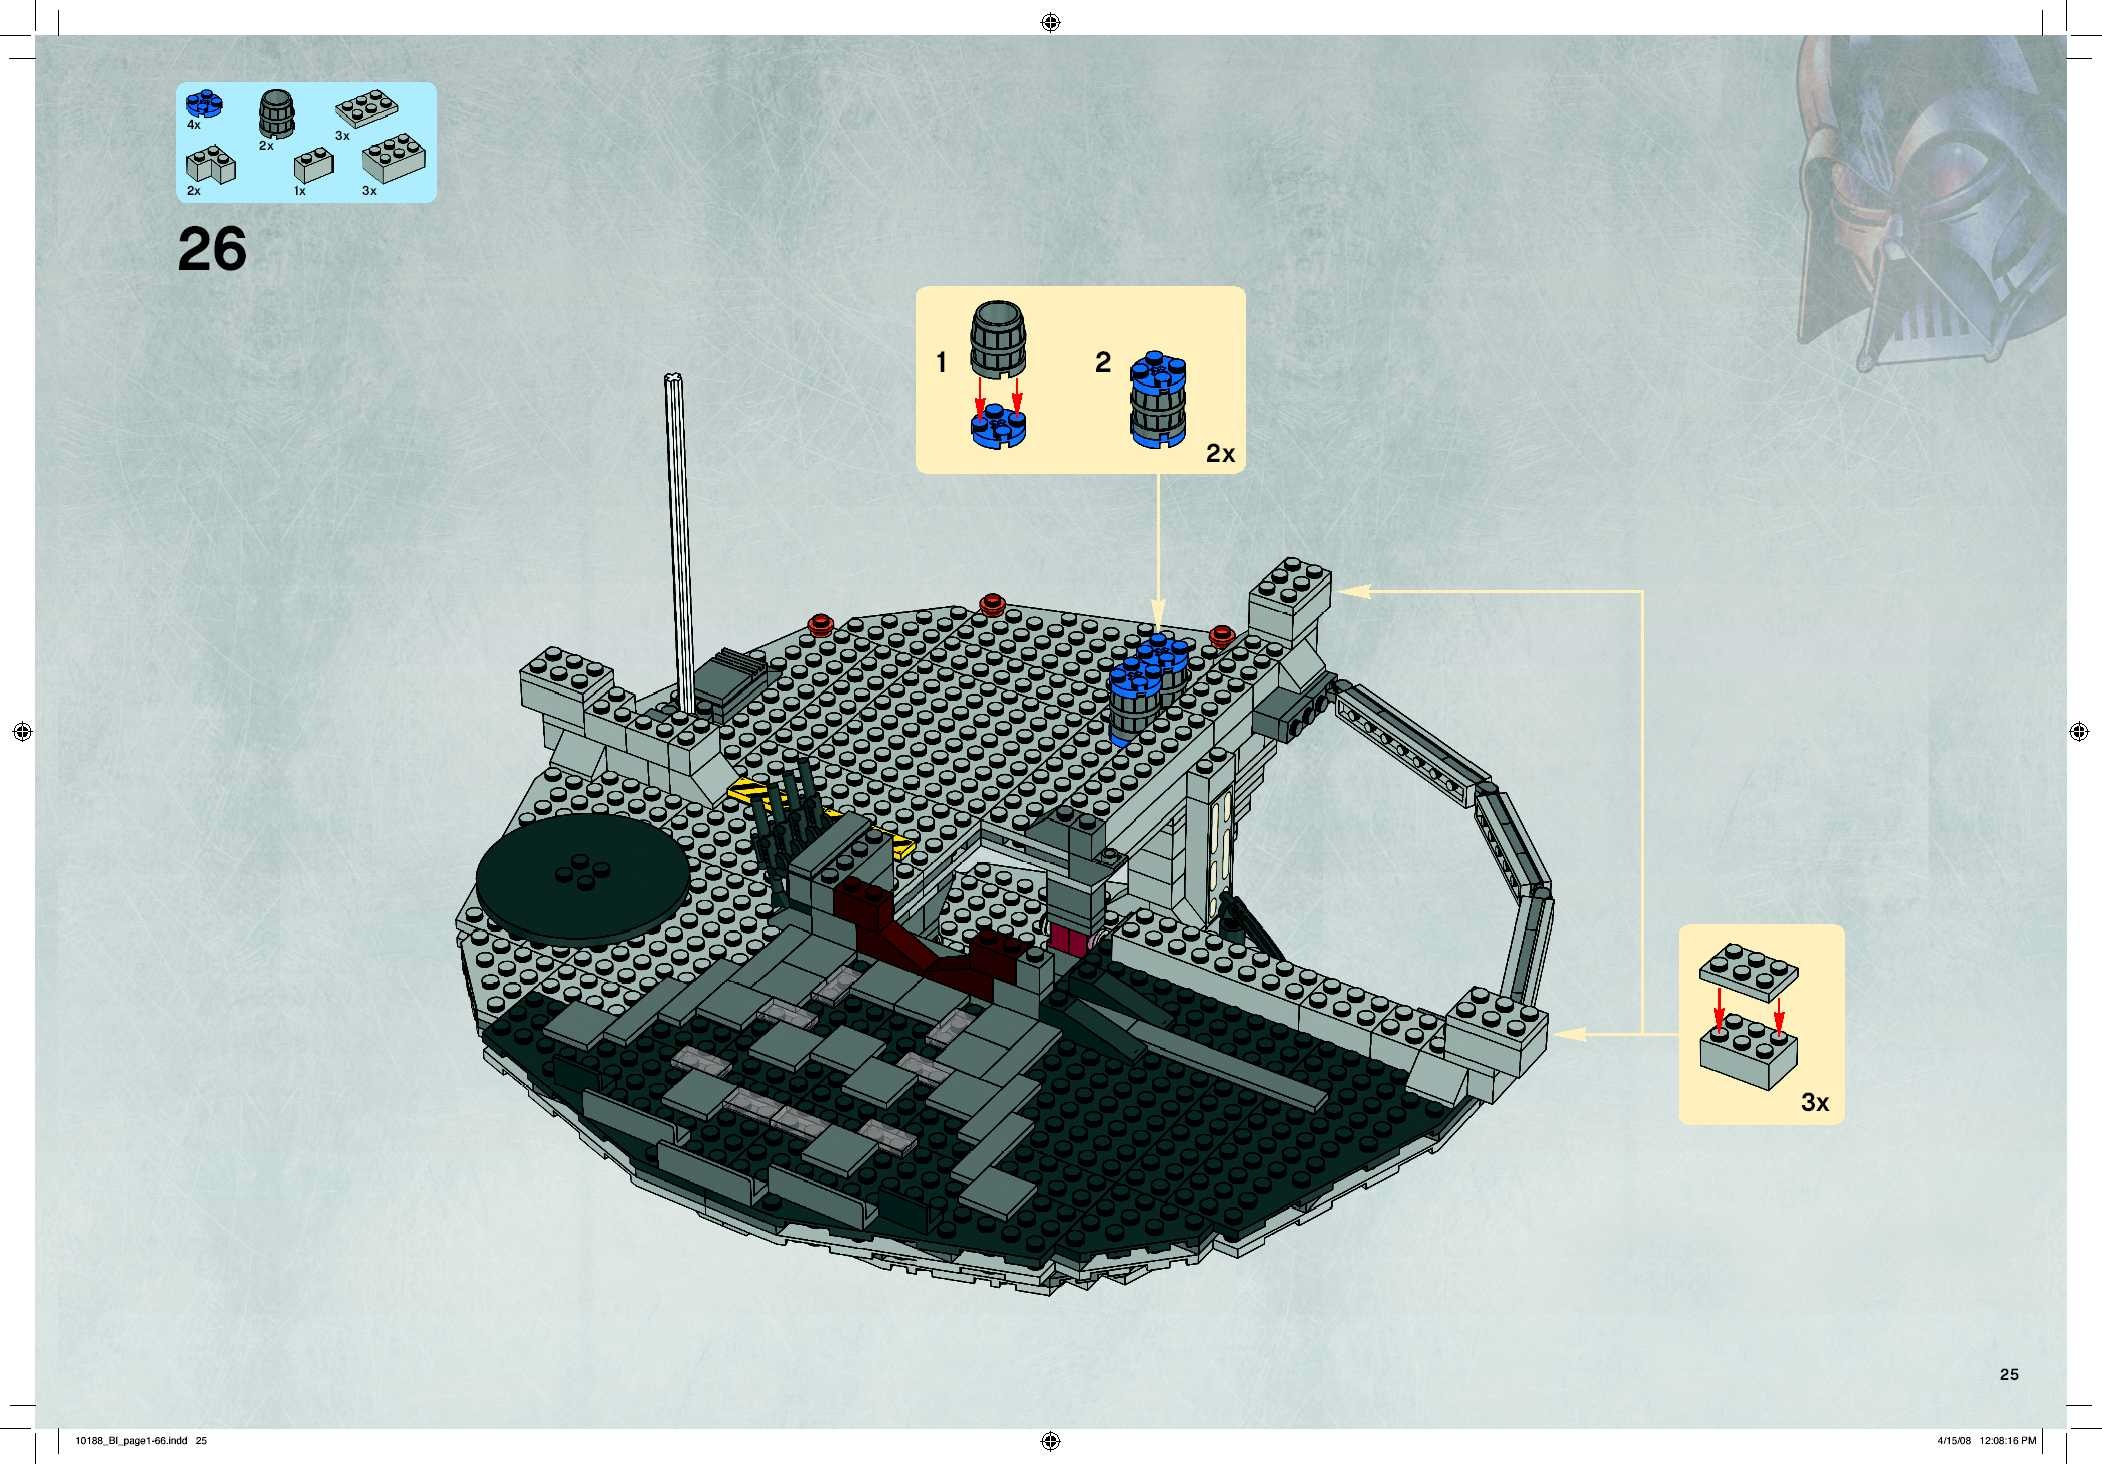 lego star wars death star instructions